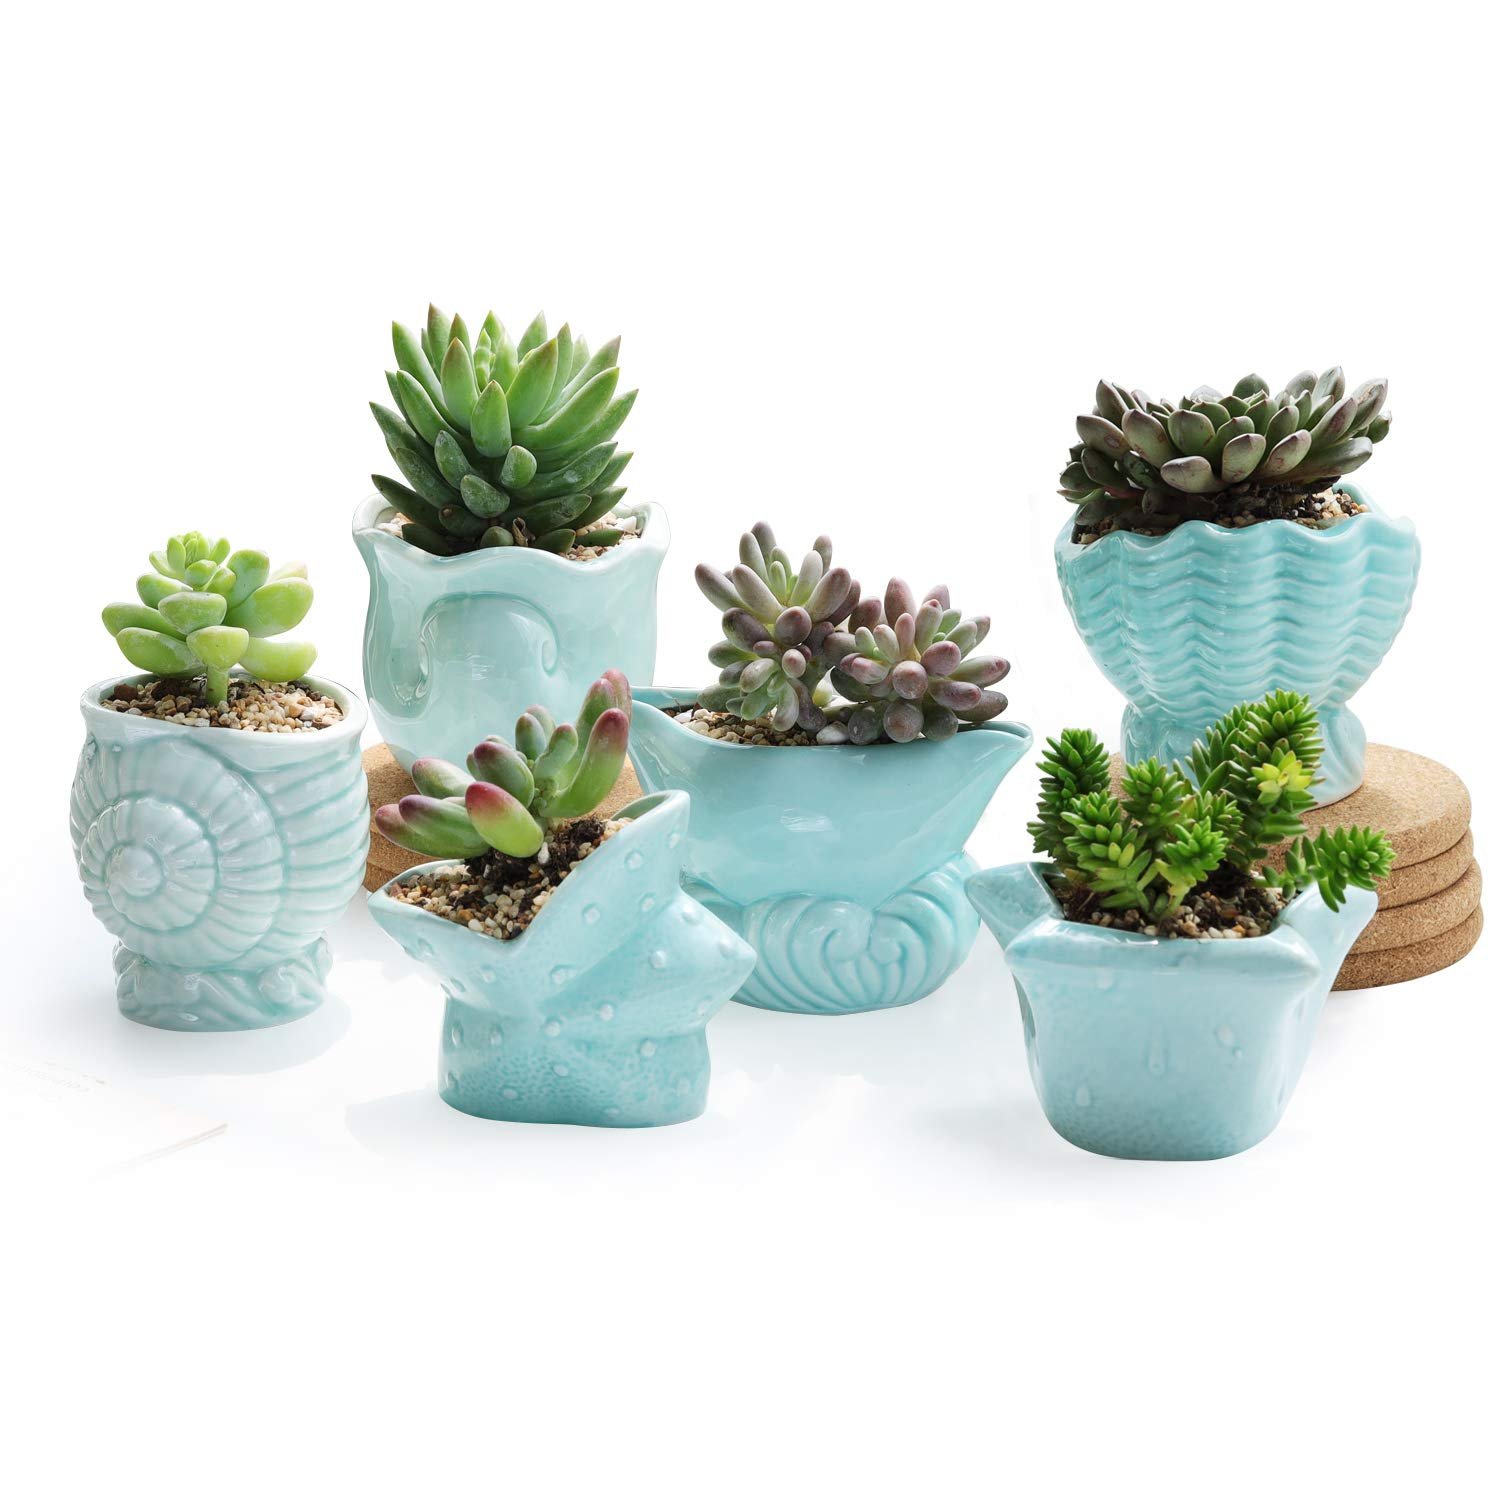 T4u 3 Inch Small Succulent Pot With Drainage Teal Seashell Ceramic Succulent Planter Set Of 6